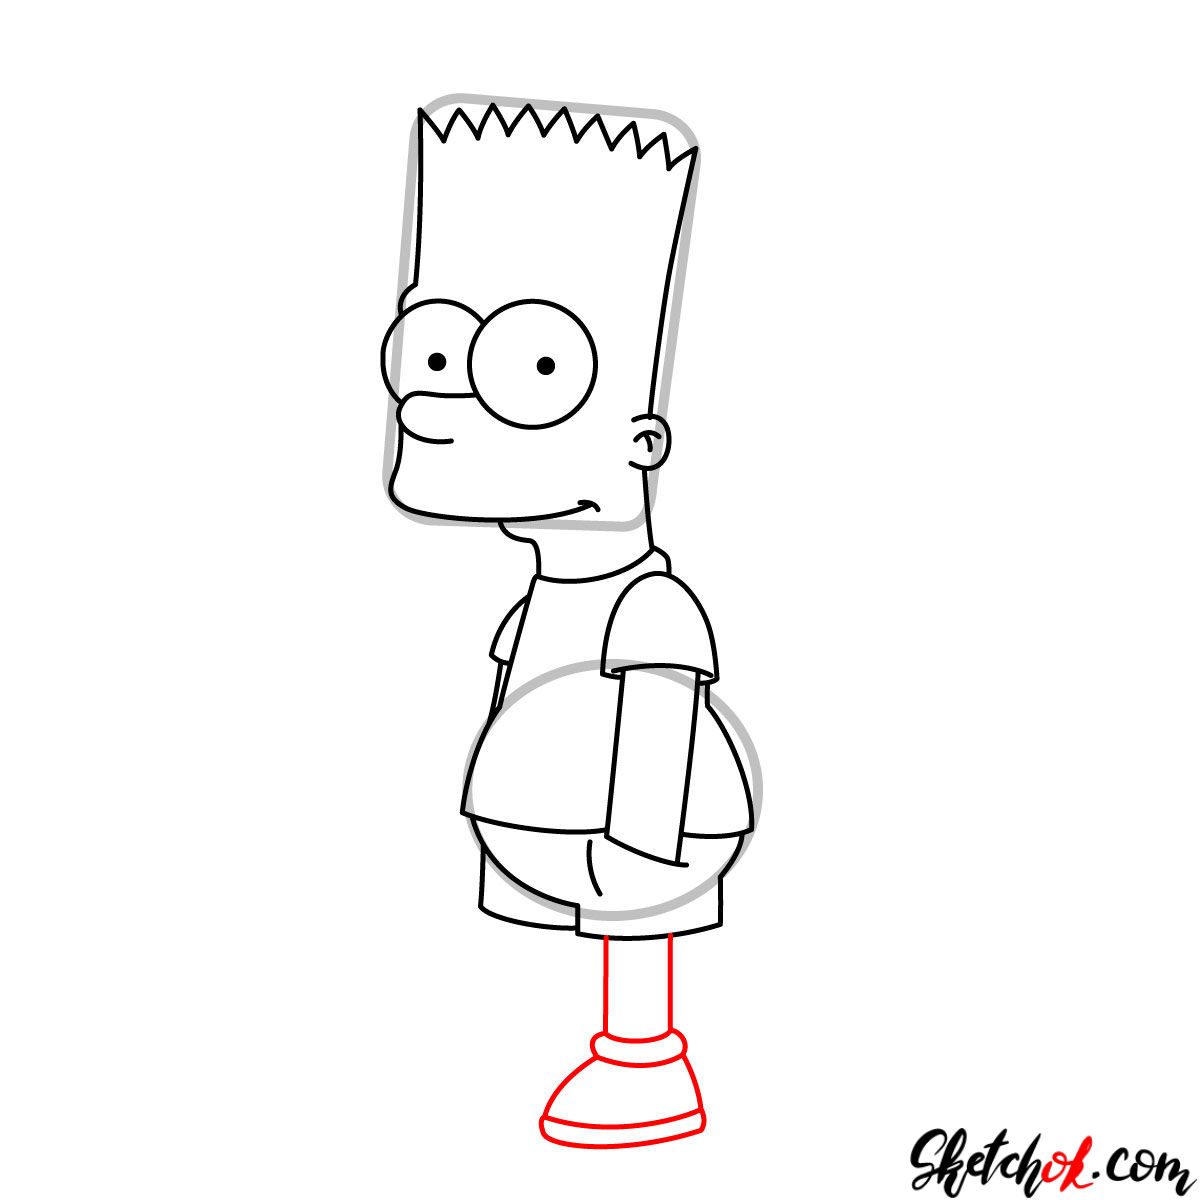 How to draw Bart Simpson - step 08